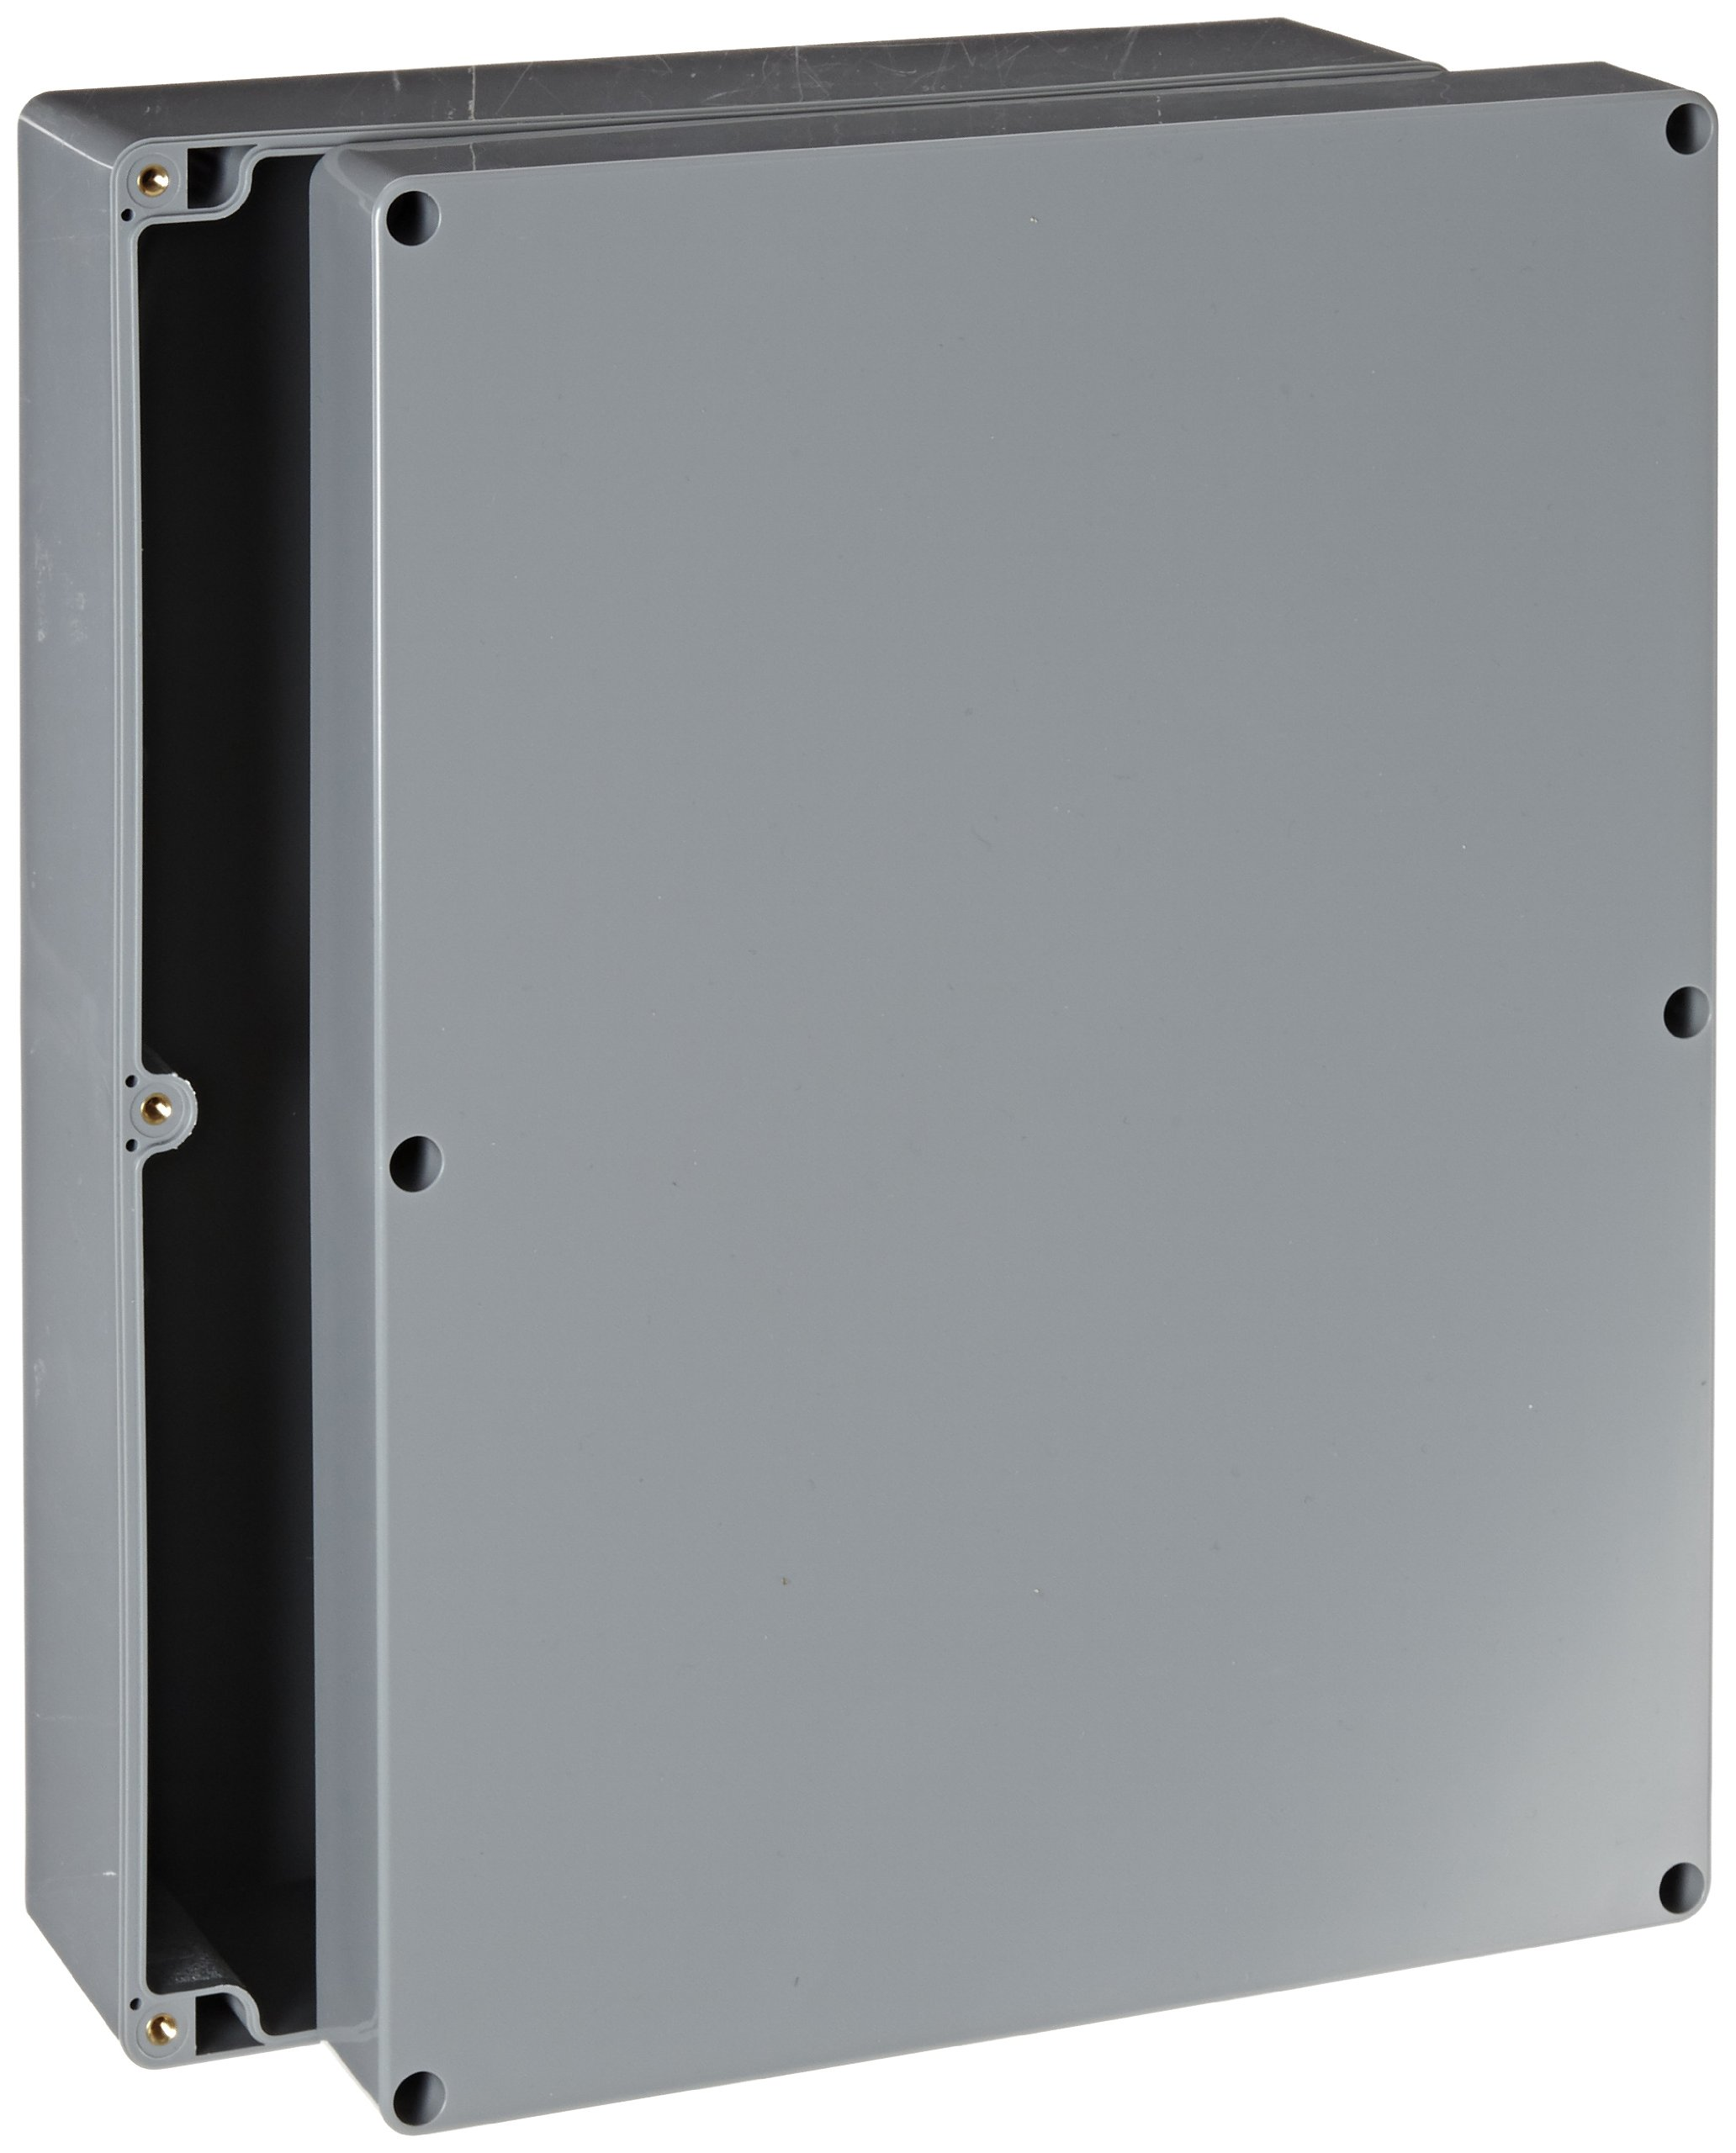 BUD Industries PN-1342-DG High-Impact ABS NEMA 4X Indoor Box, 11-51/64'' Length x 9-3/64'' Width x 3-3/8'' Height, Dark Gray Finish